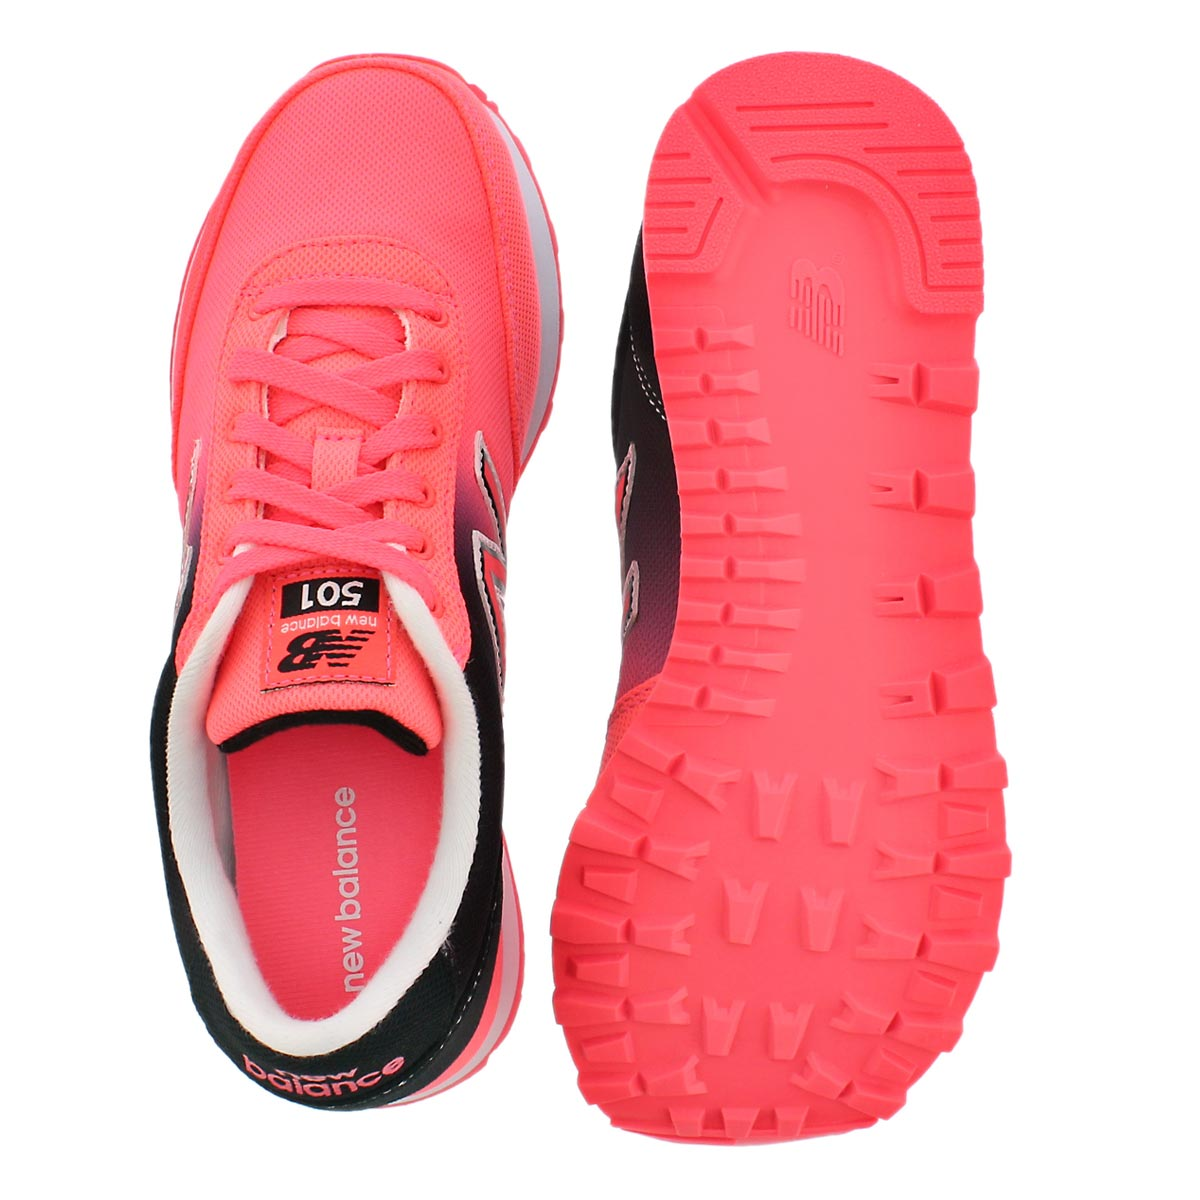 Lds 501 black/coral ombre lace up